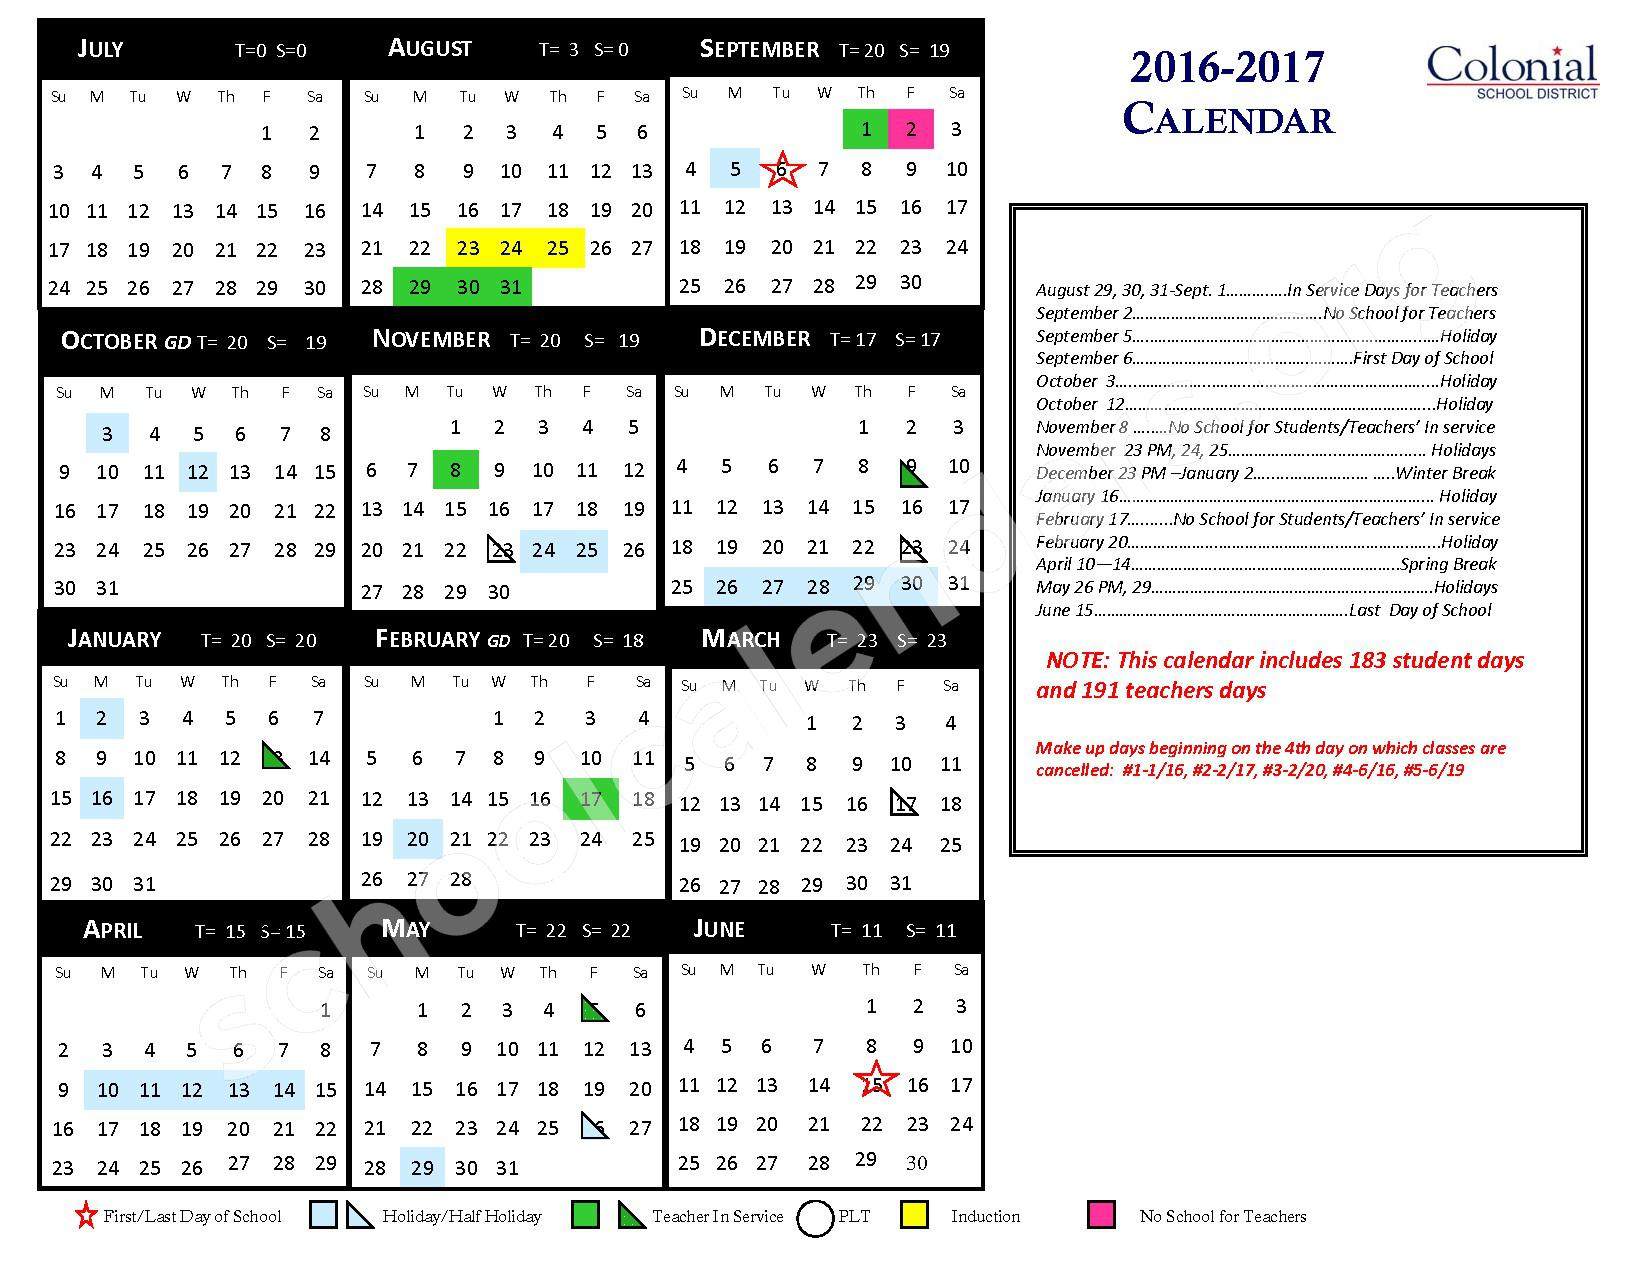 2016 - 2017 District Calendar – Colonial School District – page 1